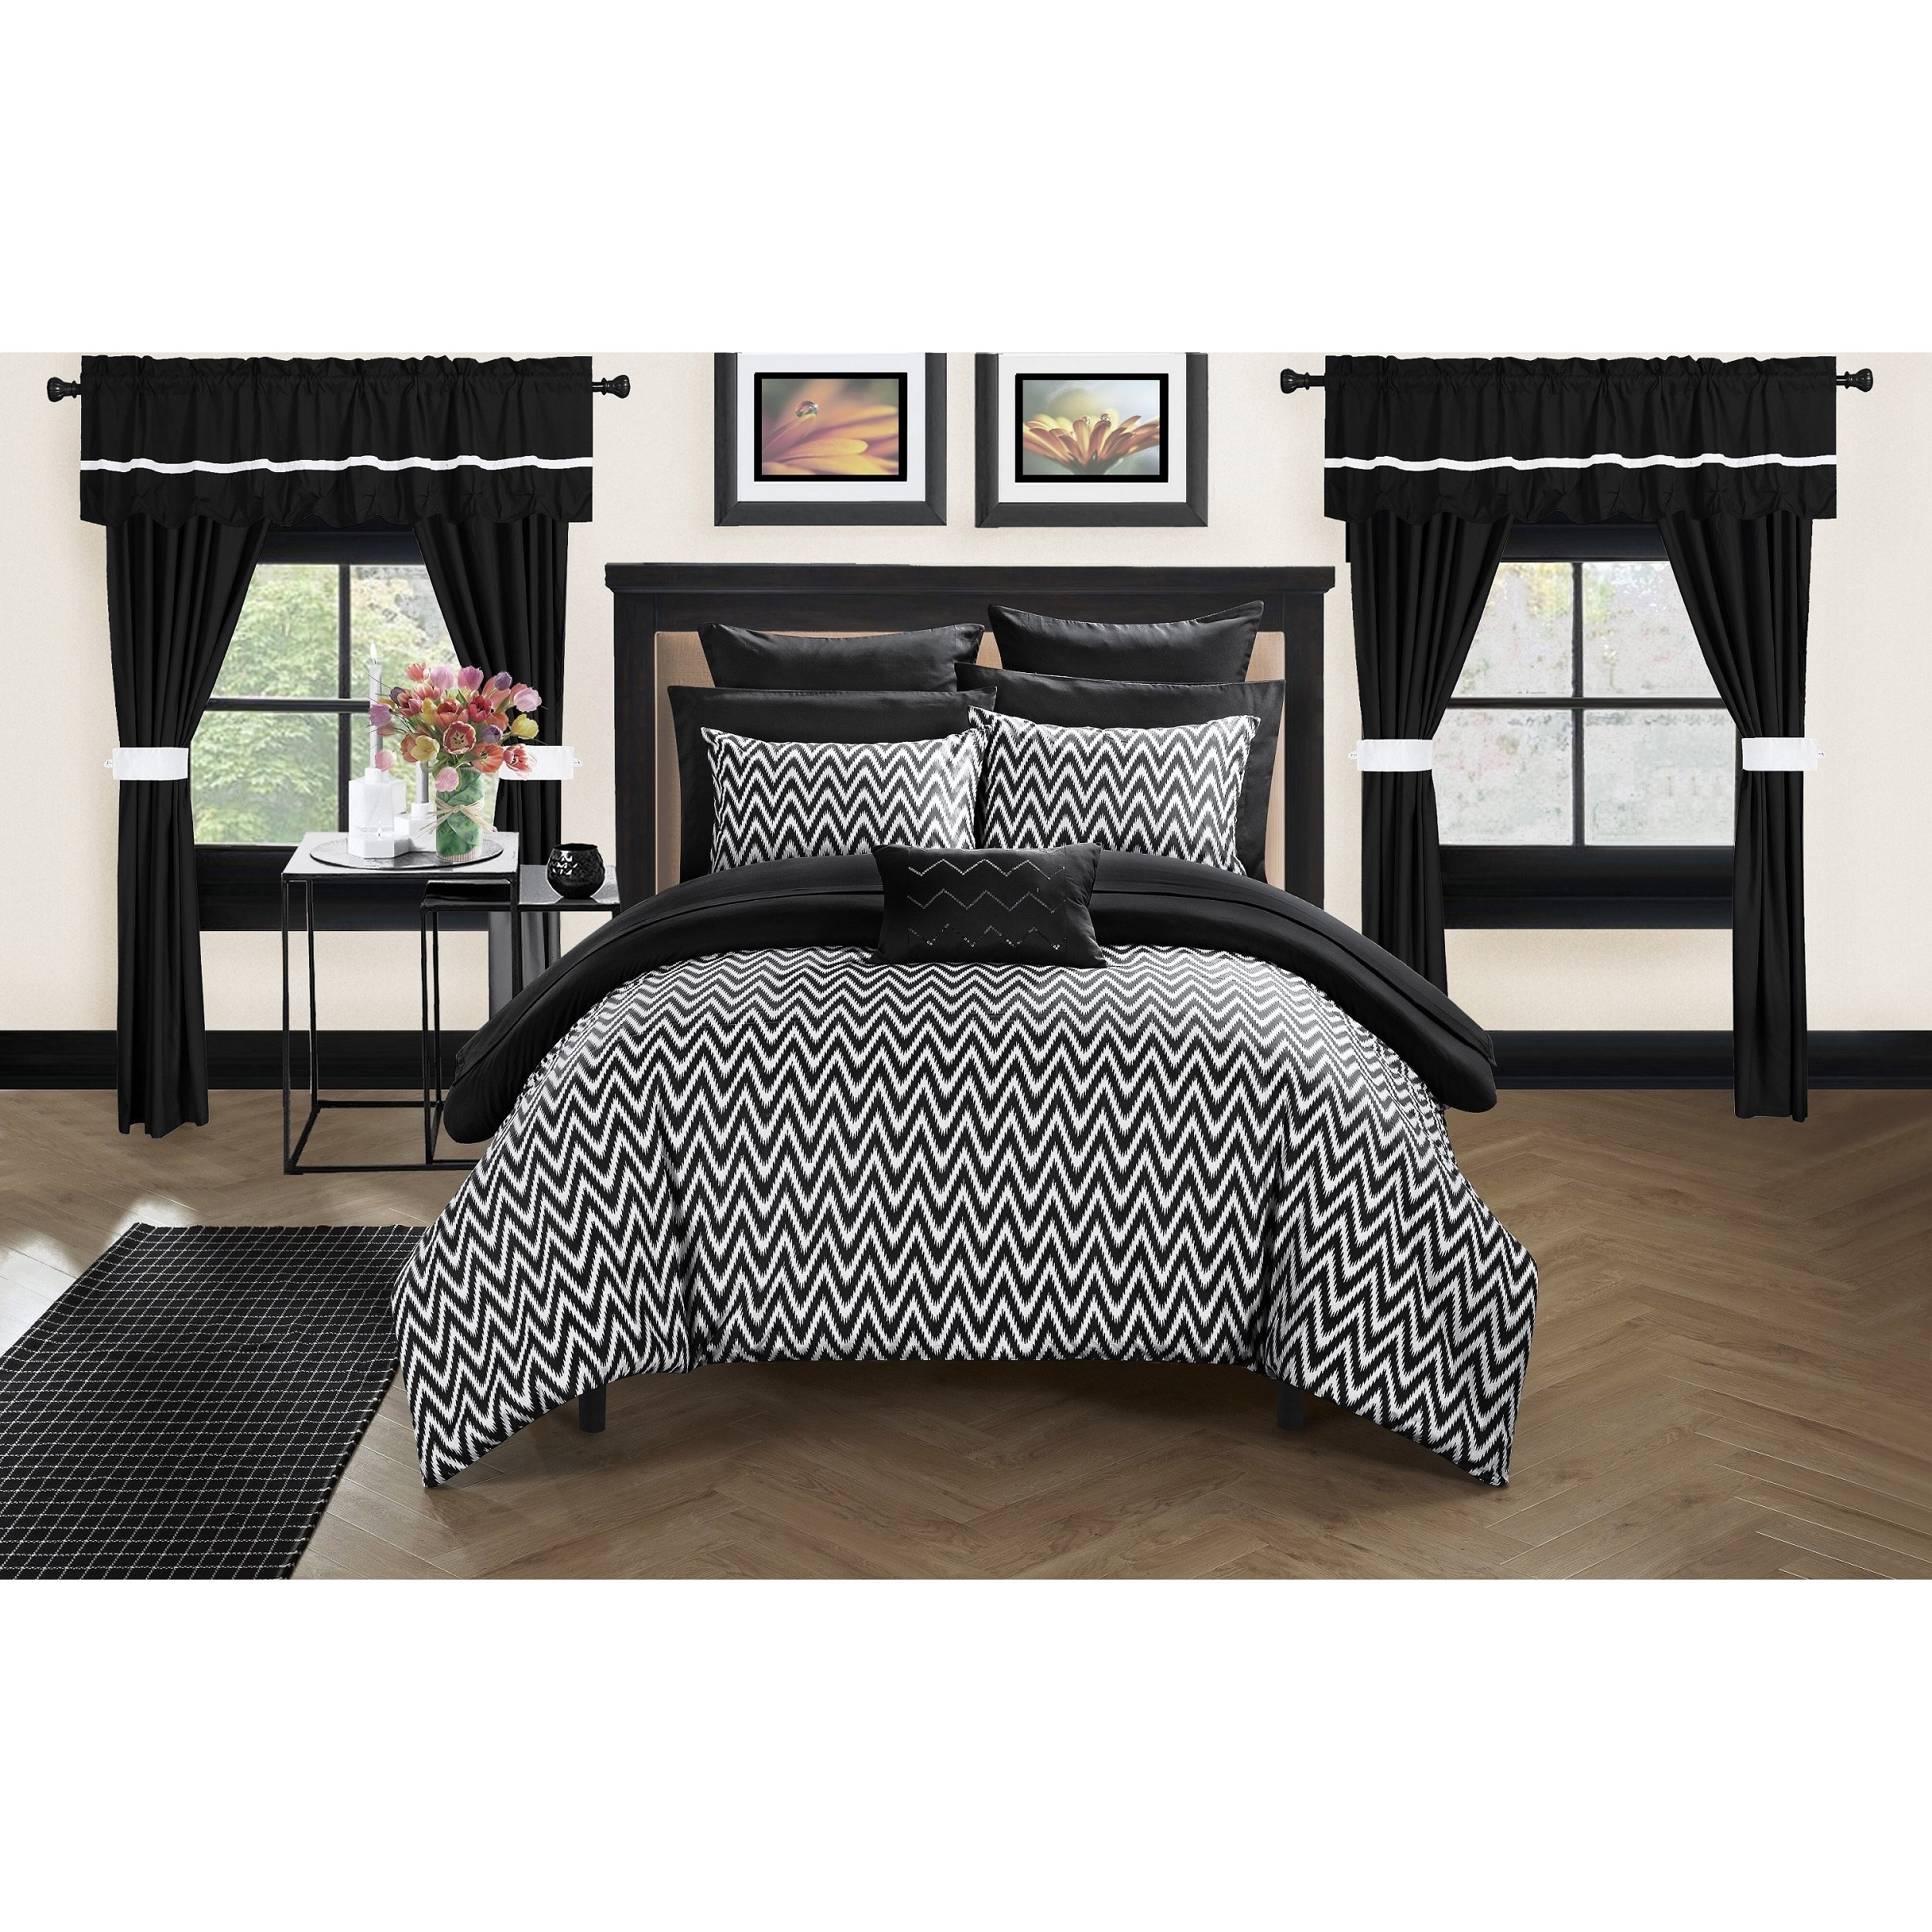 Chic Home Potterville Black Pintuck 20-Piece Bed-In-A-Bag...